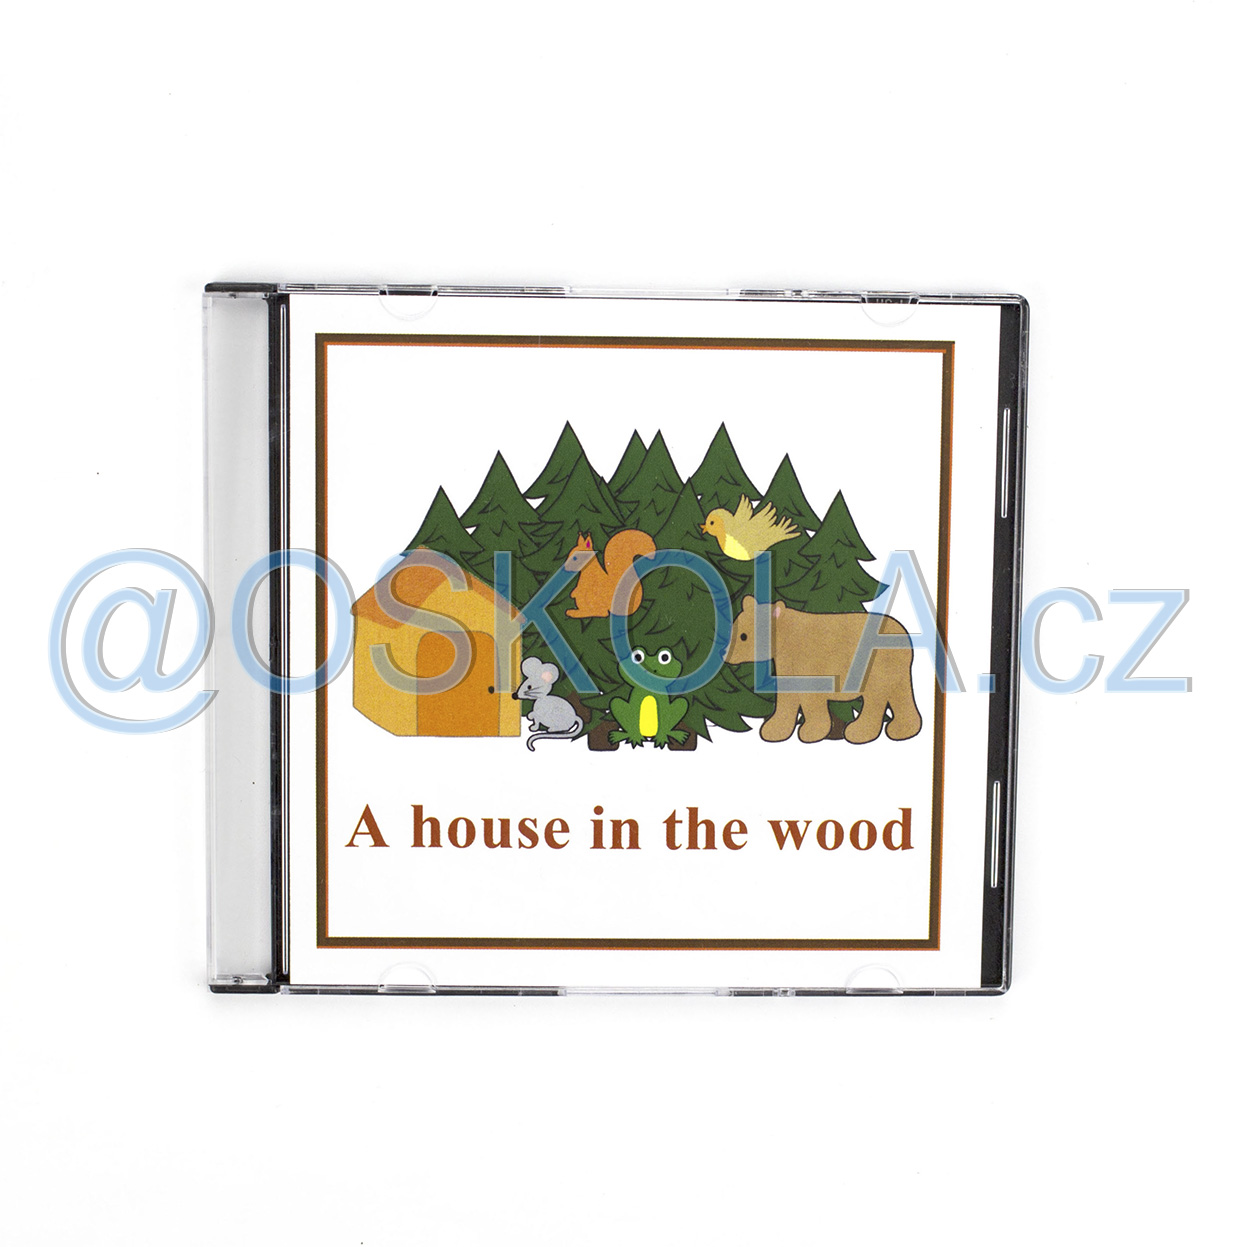 CD - A house in the wood (1 jazyk en)